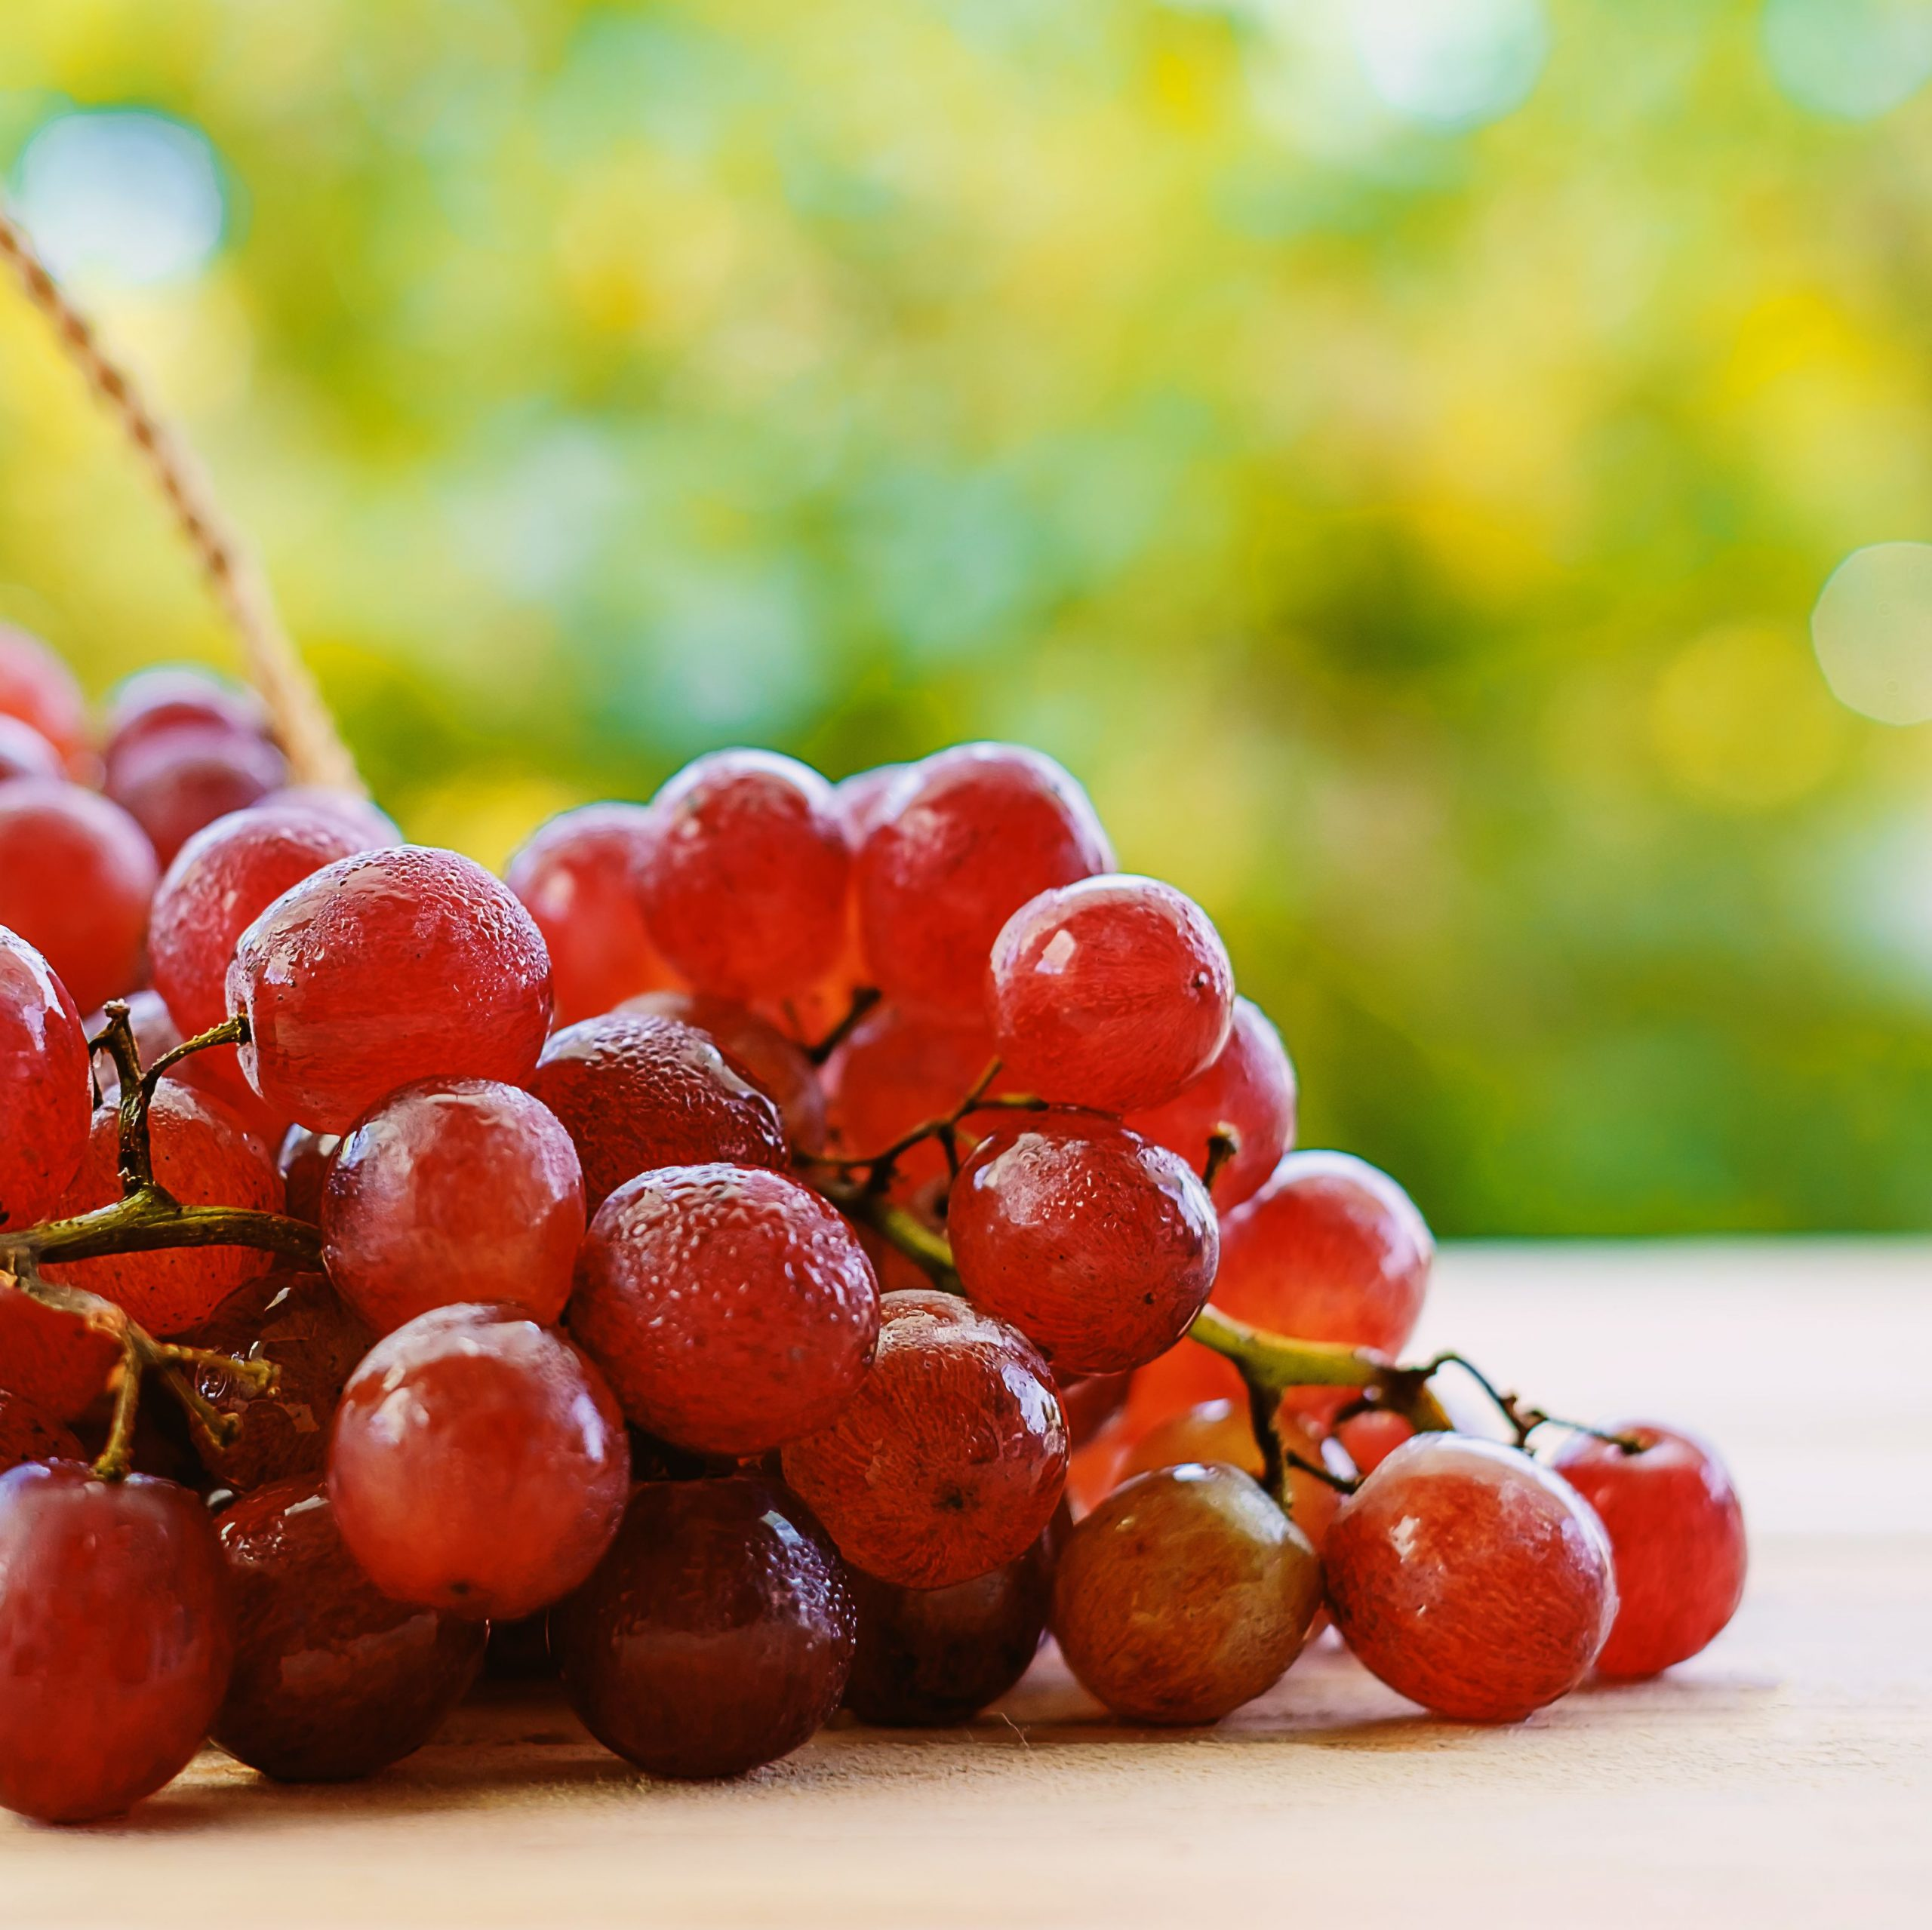 Close-Up Of Red Grapes On Table